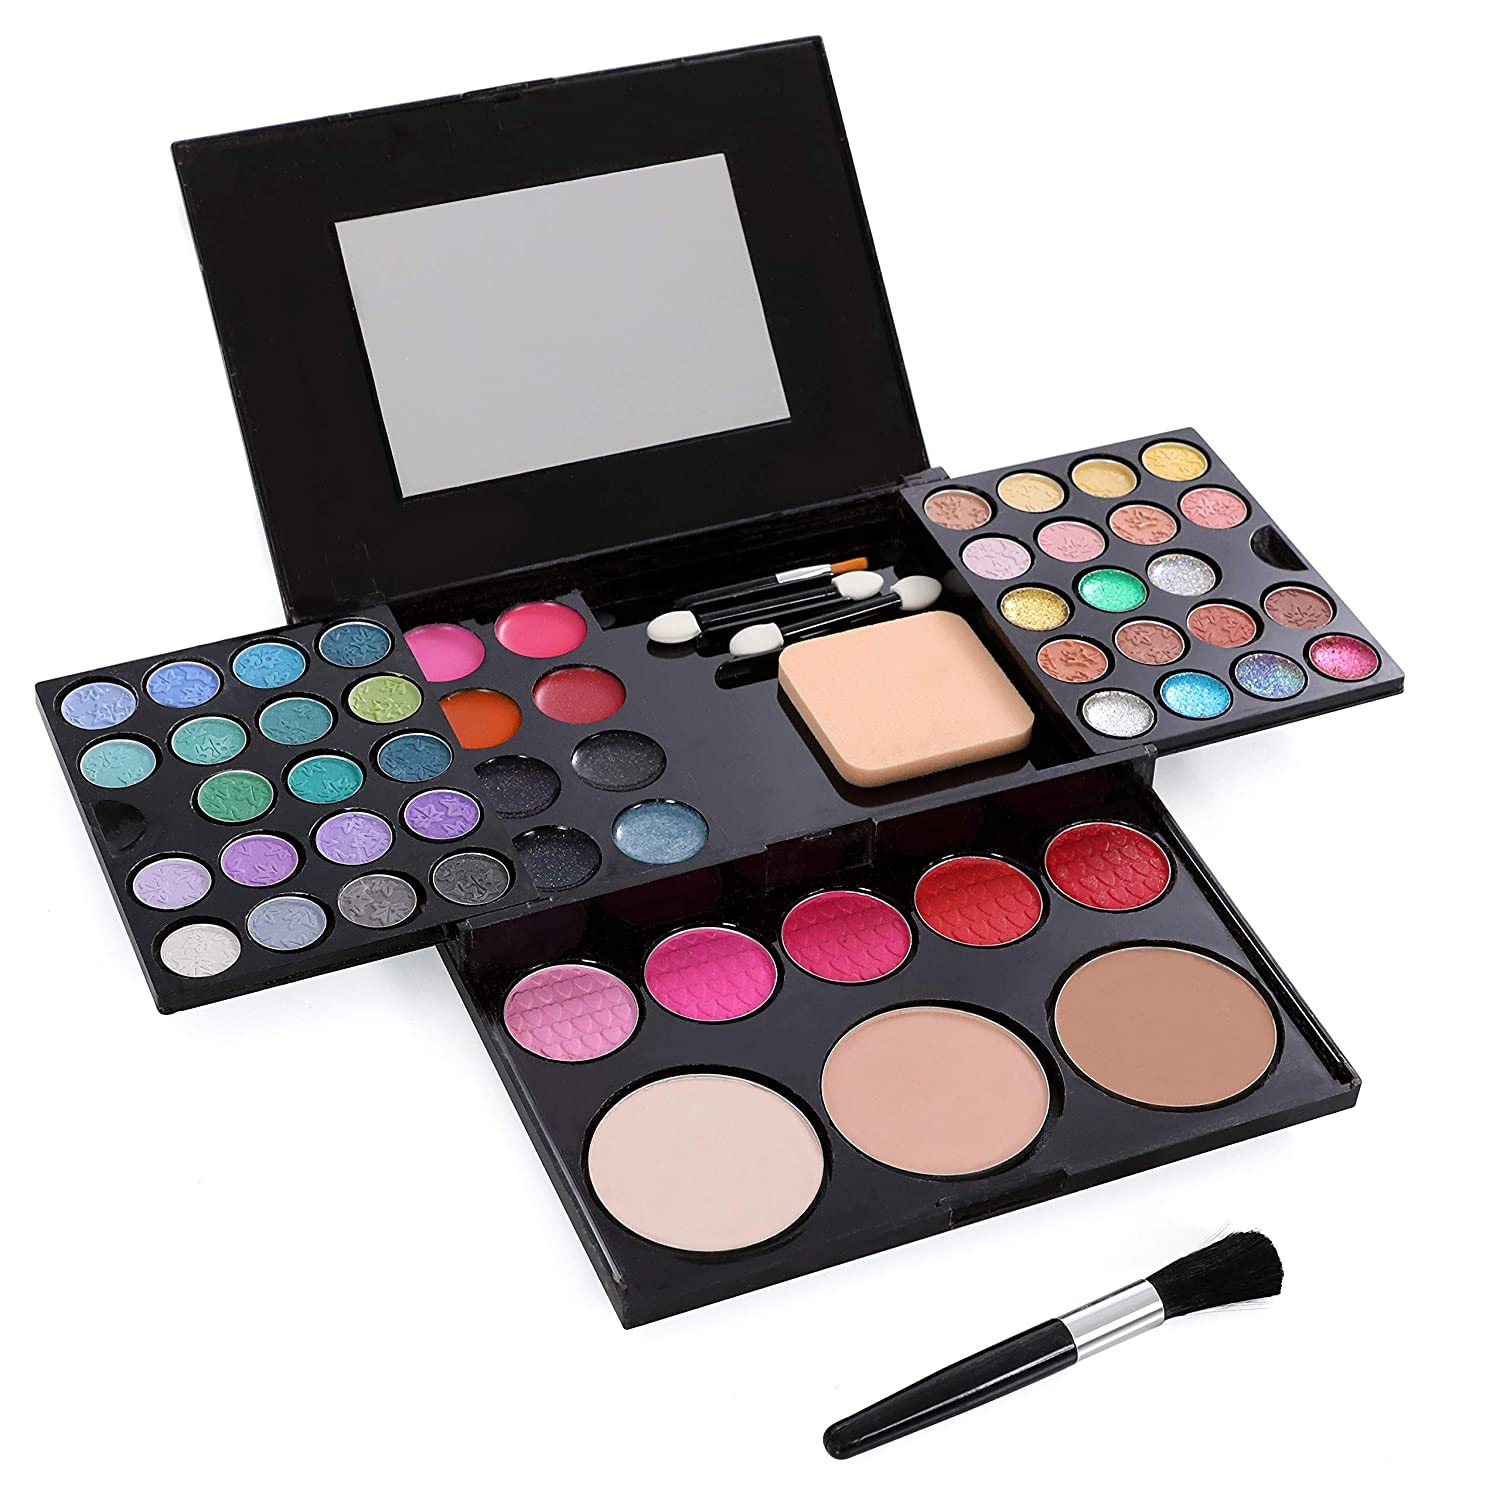 Dress 2 Play Mini-Mom Pretend Makeup Deluxe Palette Set with 54 Colors. Comes in a Hard Case and Built in Mirror